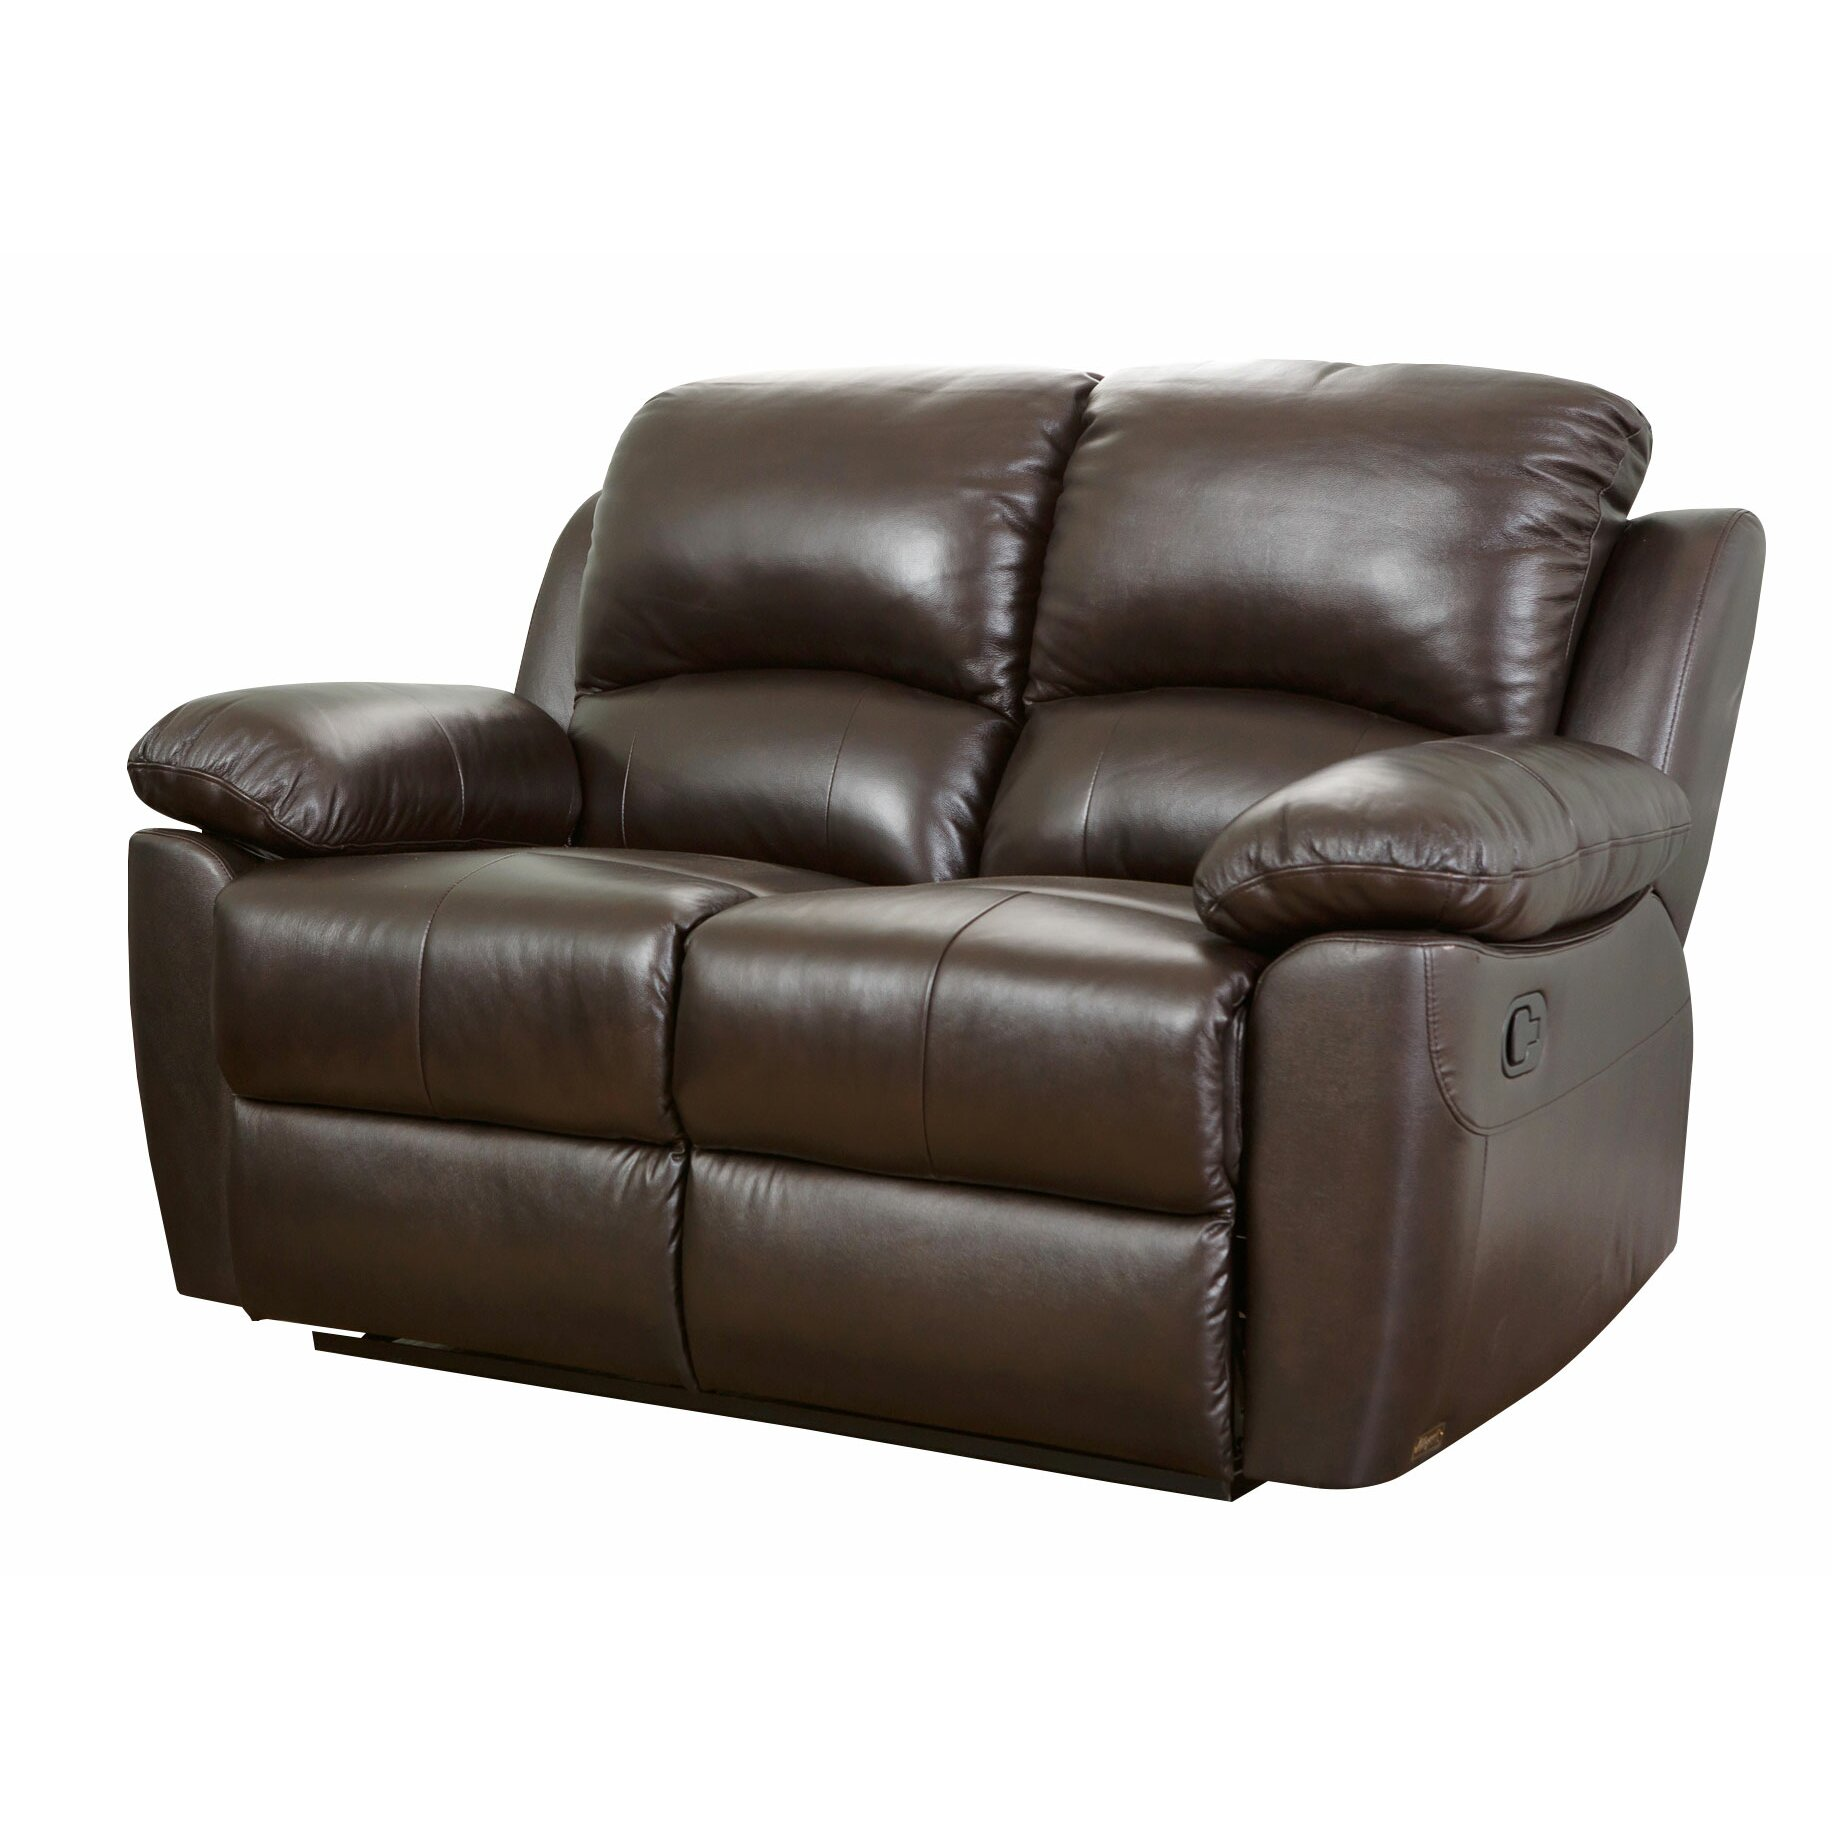 Abbyson living westwood leather reclining loveseat reviews Leather reclining loveseat